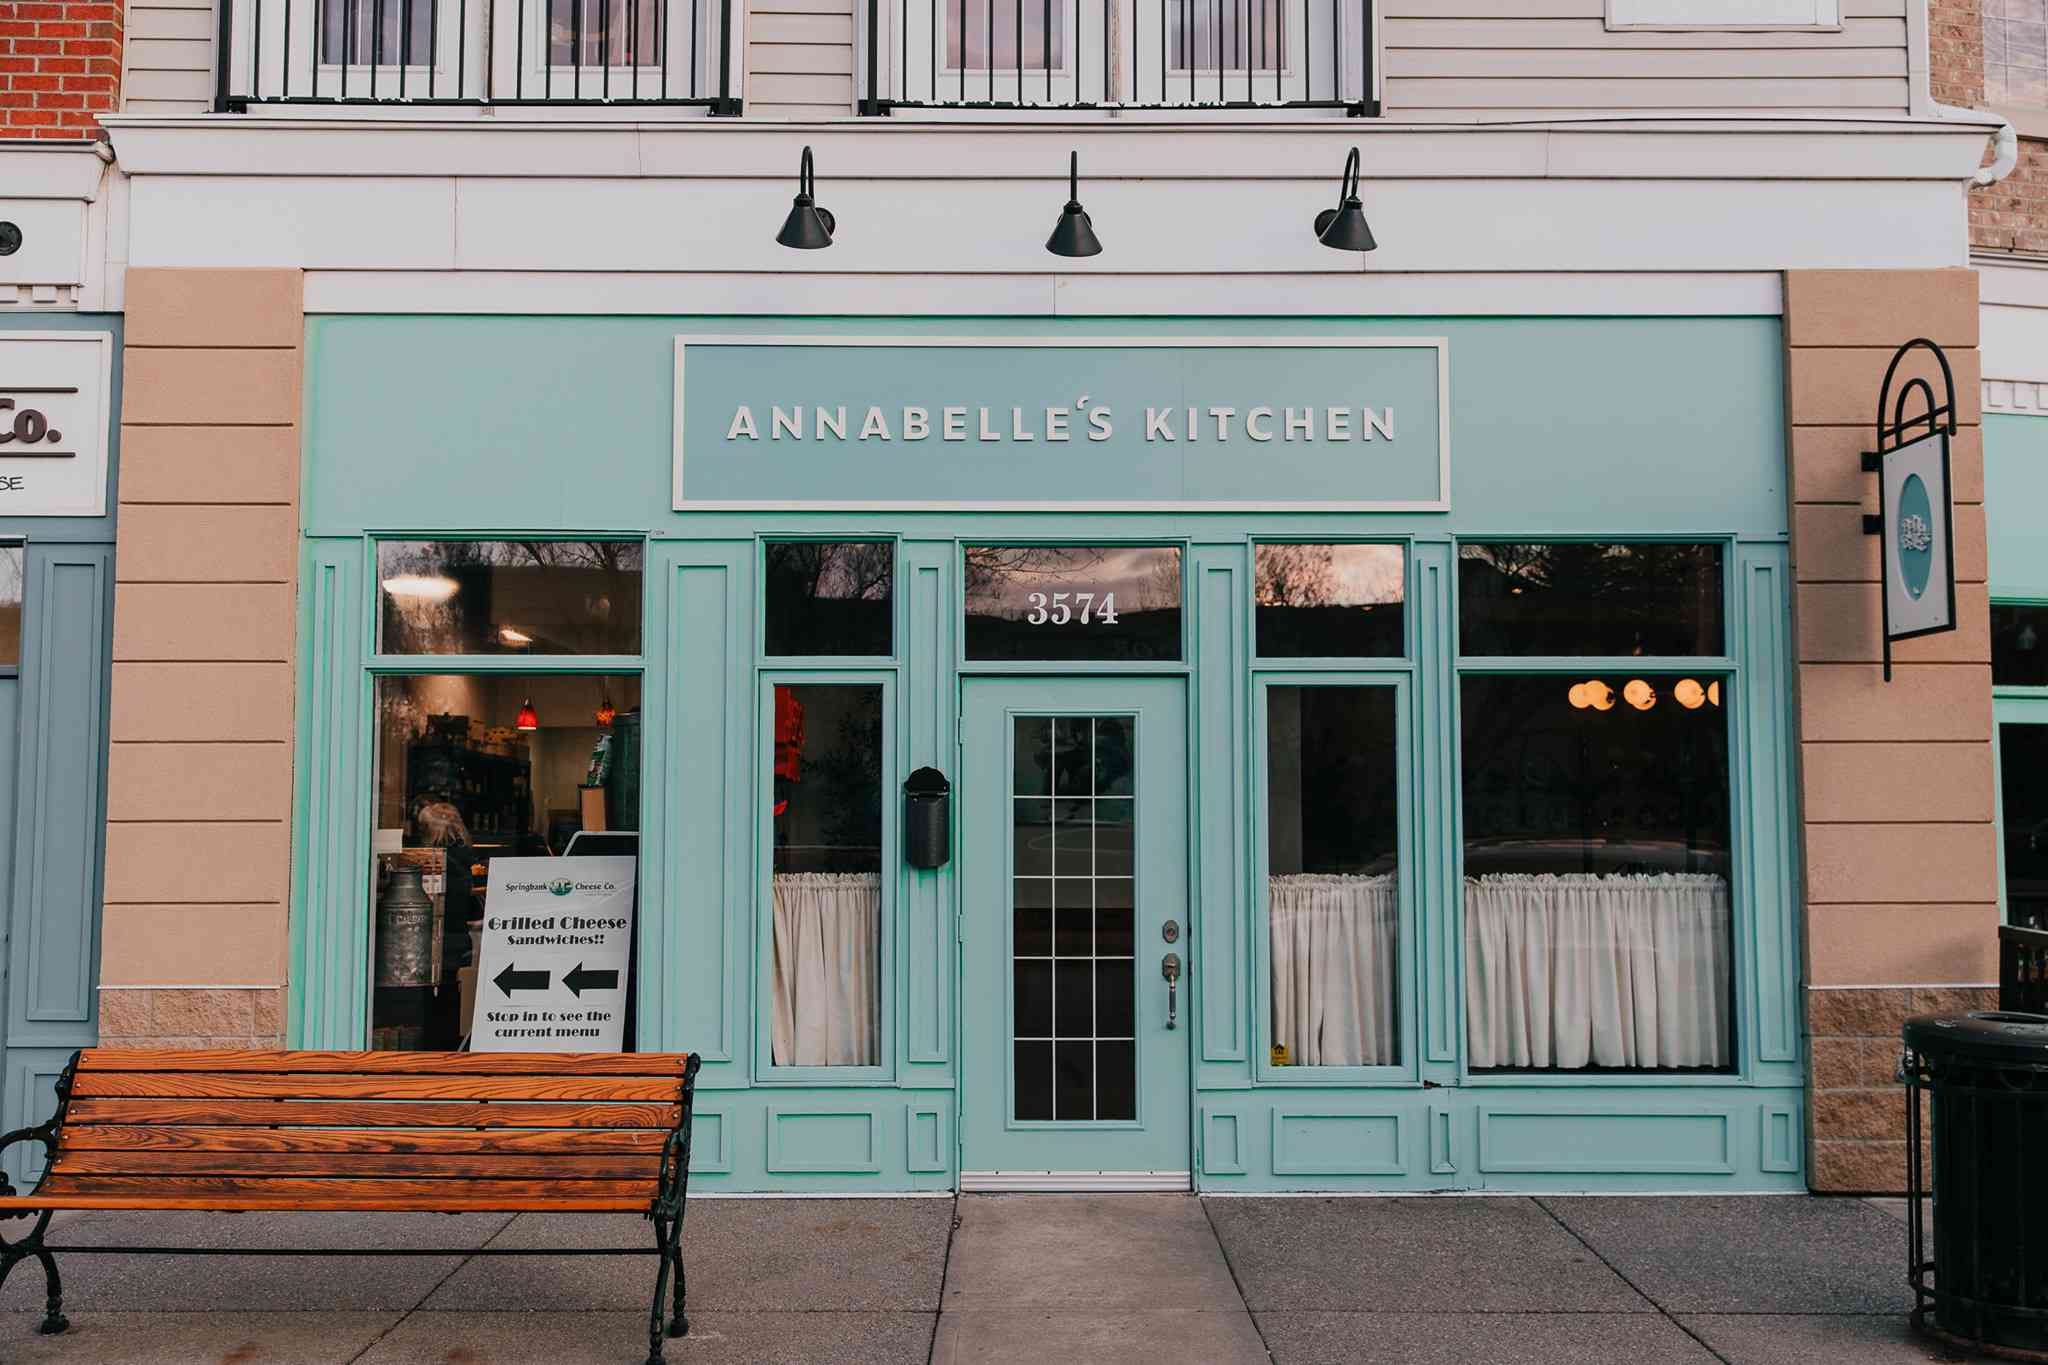 pale blue storefron with large windows and a sign that says Annabelle's Kitchen